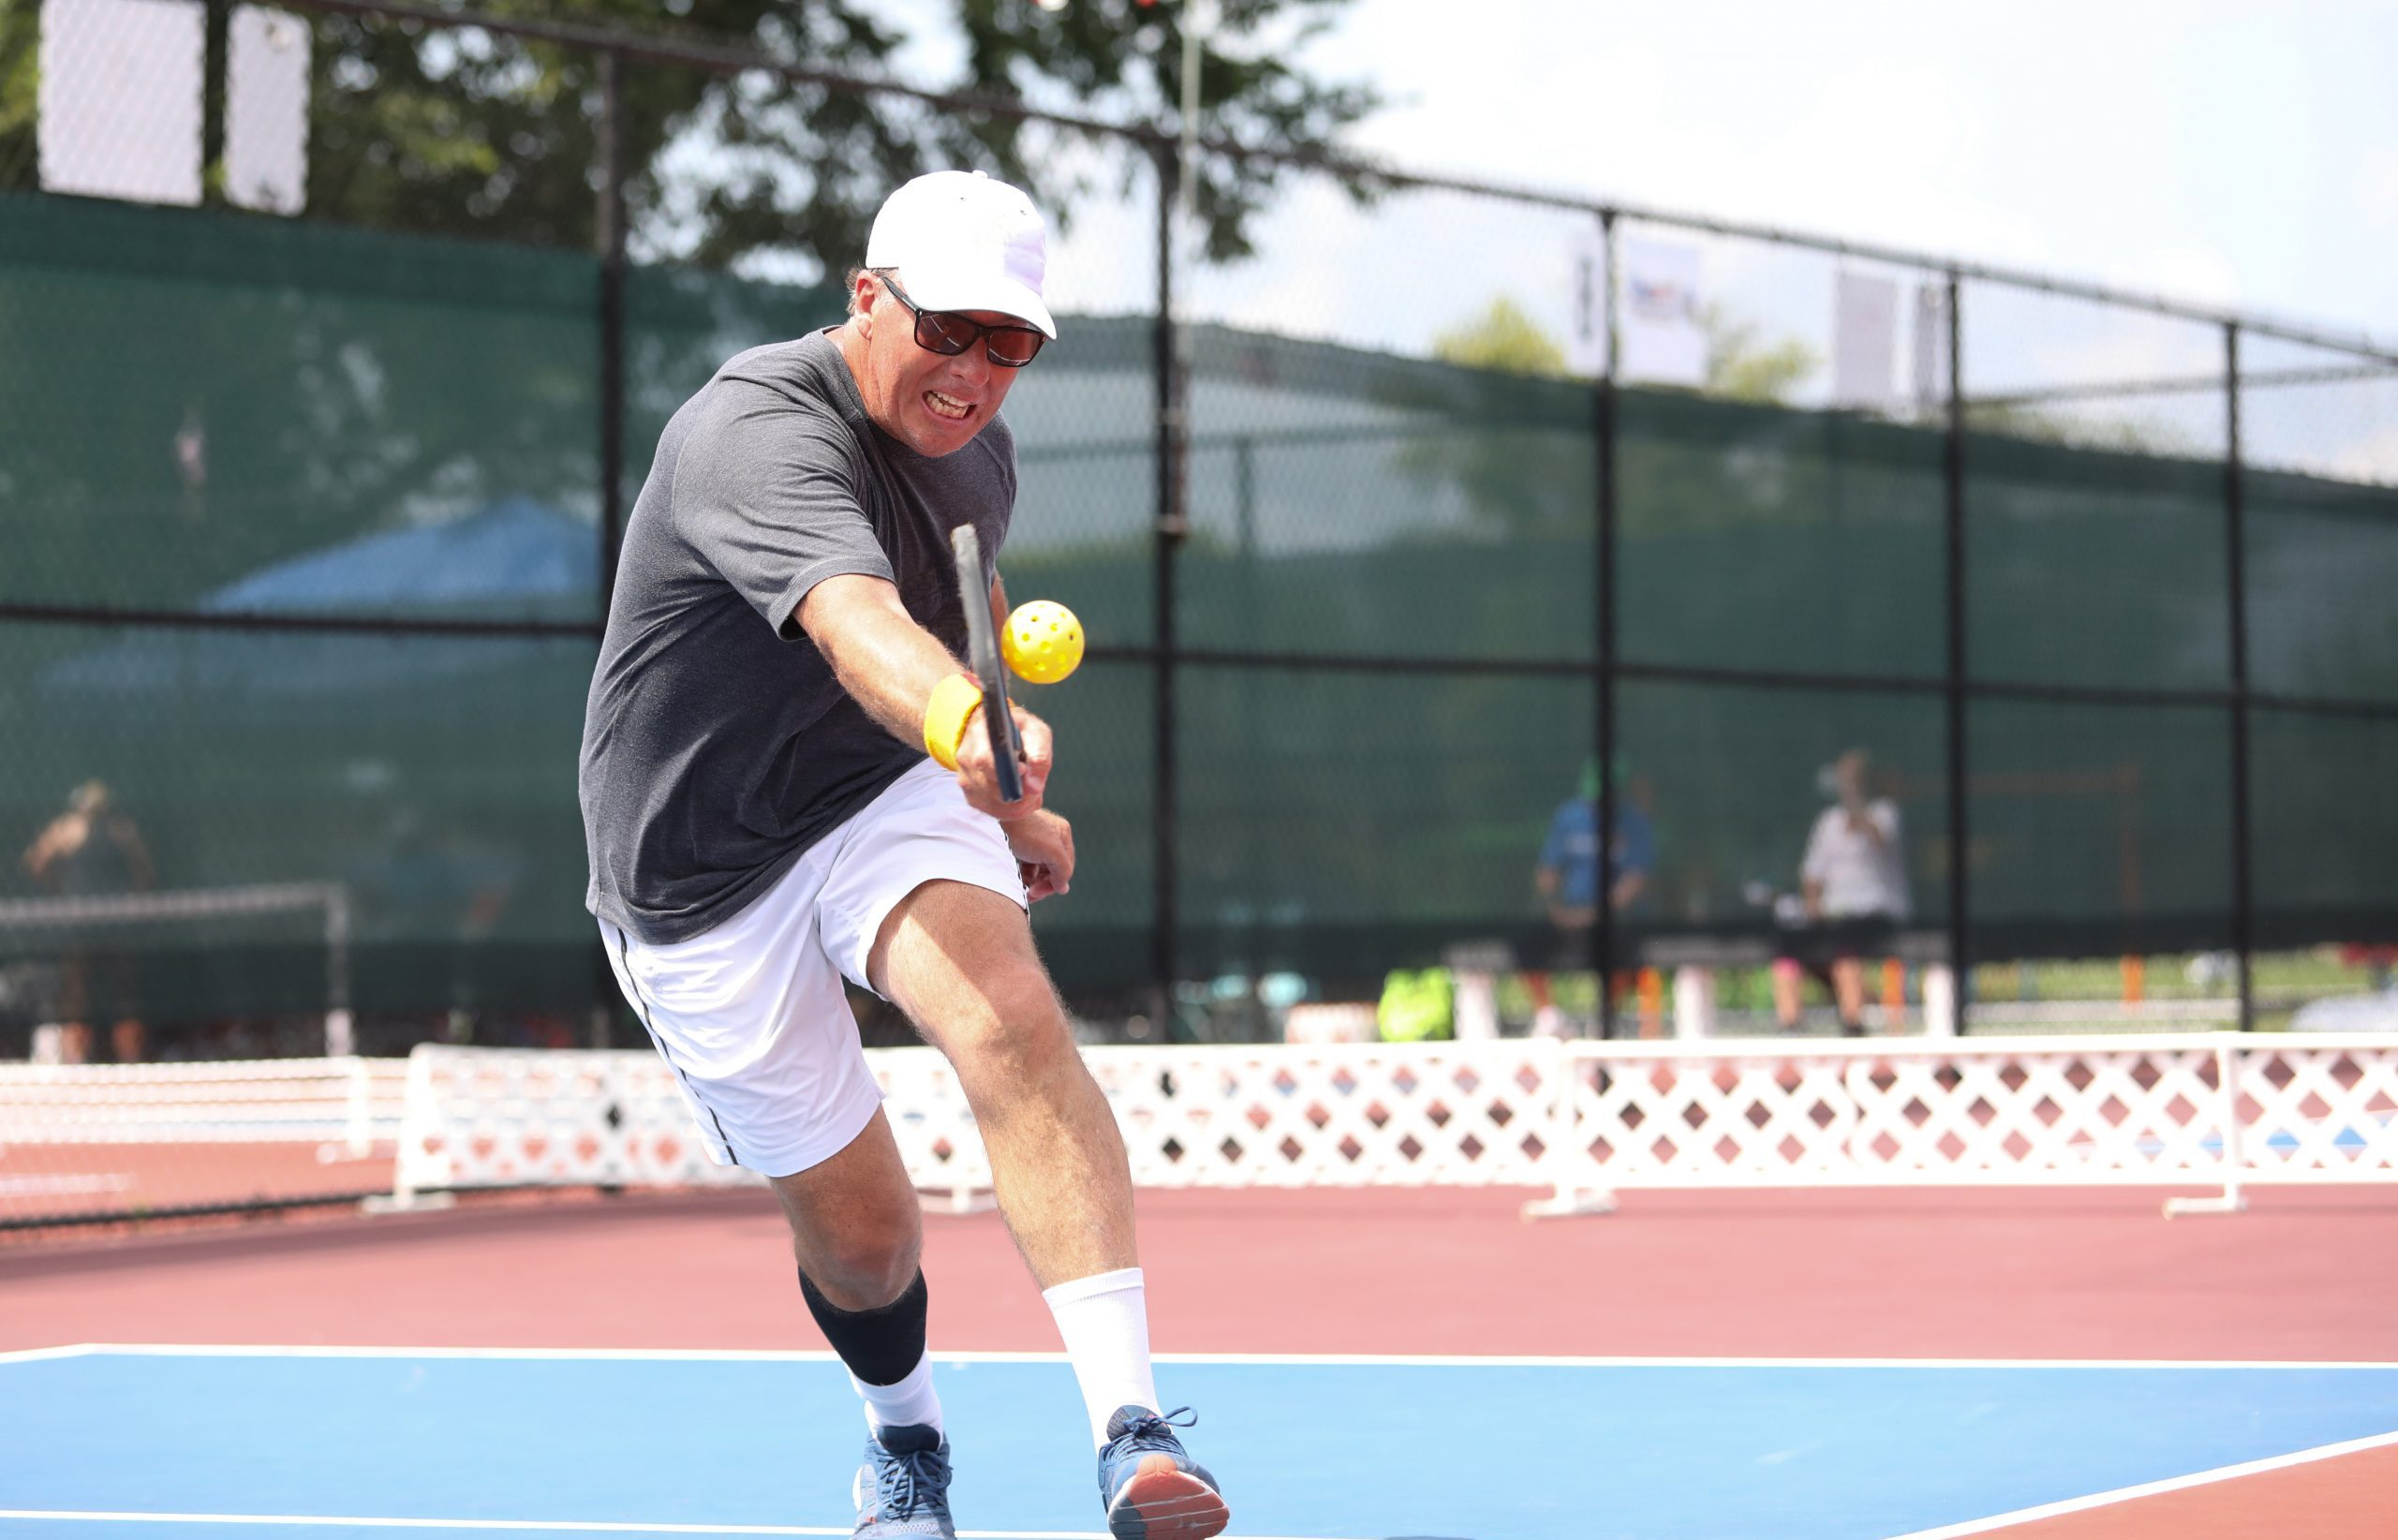 A gentleman competes in a pickleball tournament